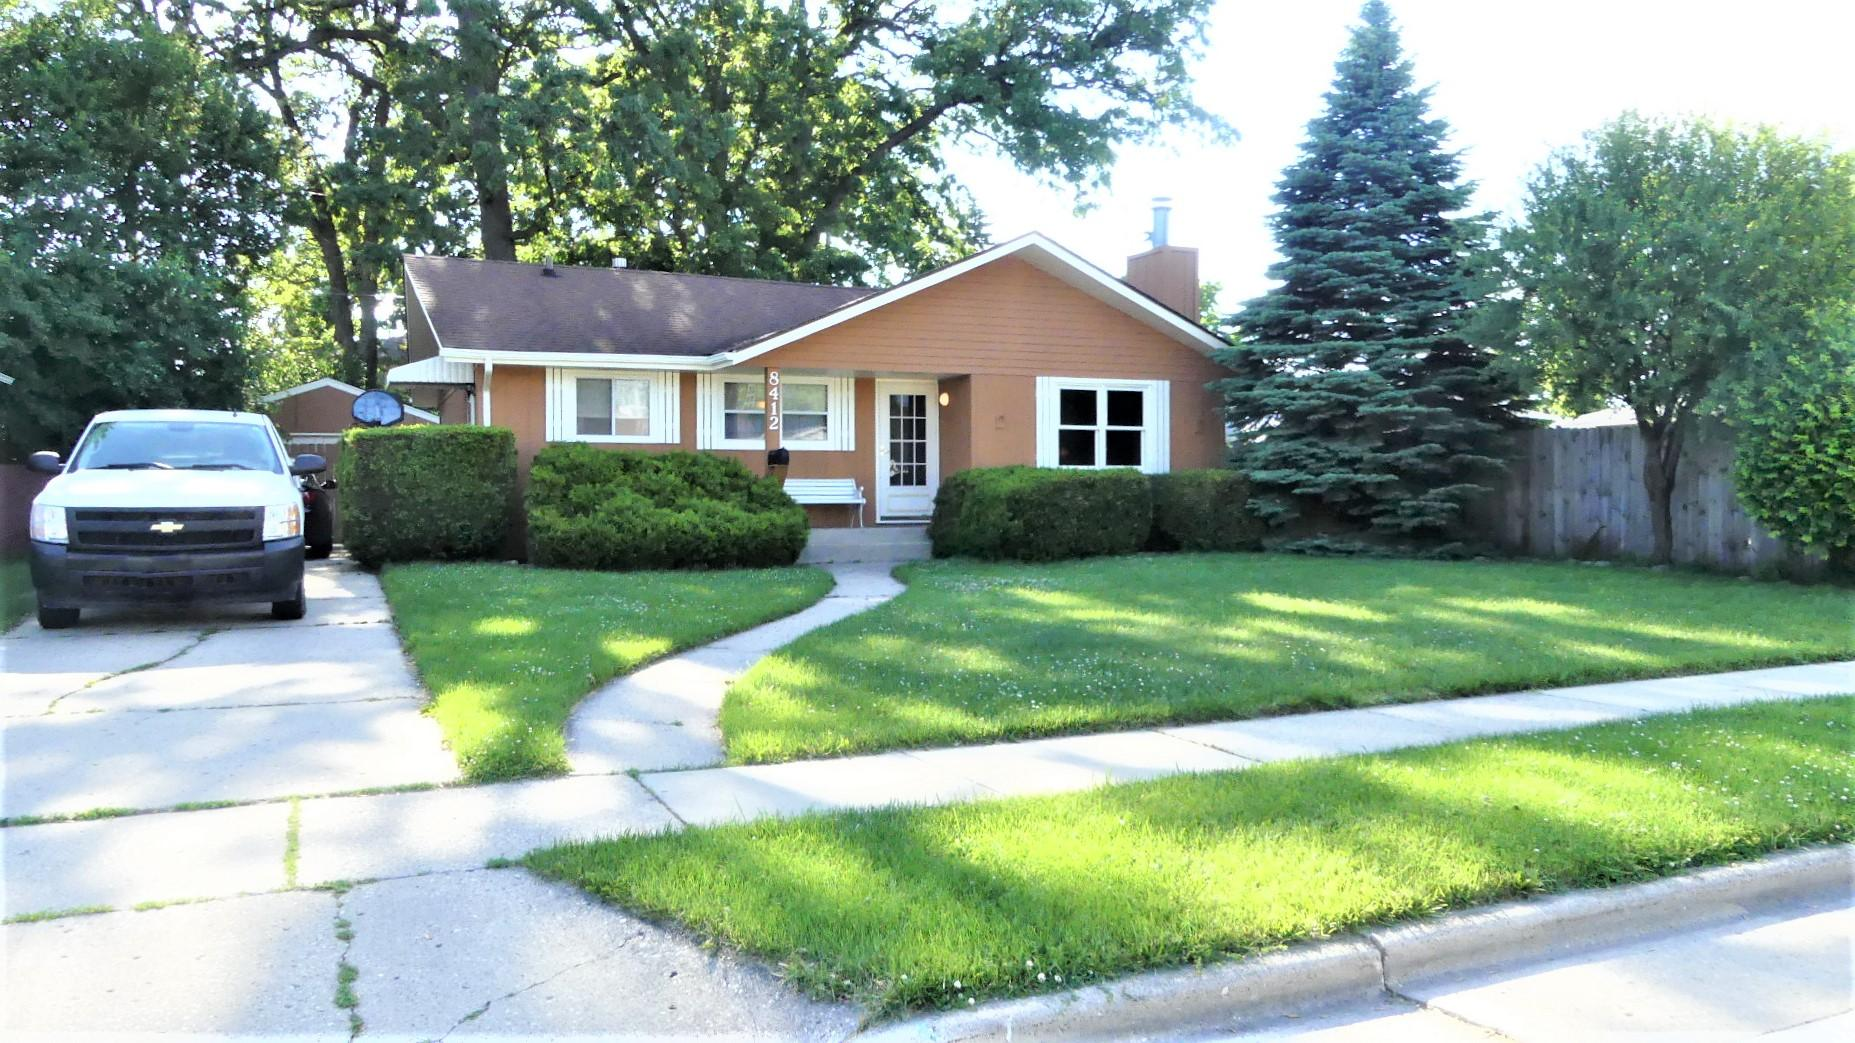 8412 21st Ave, Kenosha, Wisconsin 53143, 3 Bedrooms Bedrooms, 10 Rooms Rooms,2 BathroomsBathrooms,Single-Family,For Sale,21st Ave,1643518